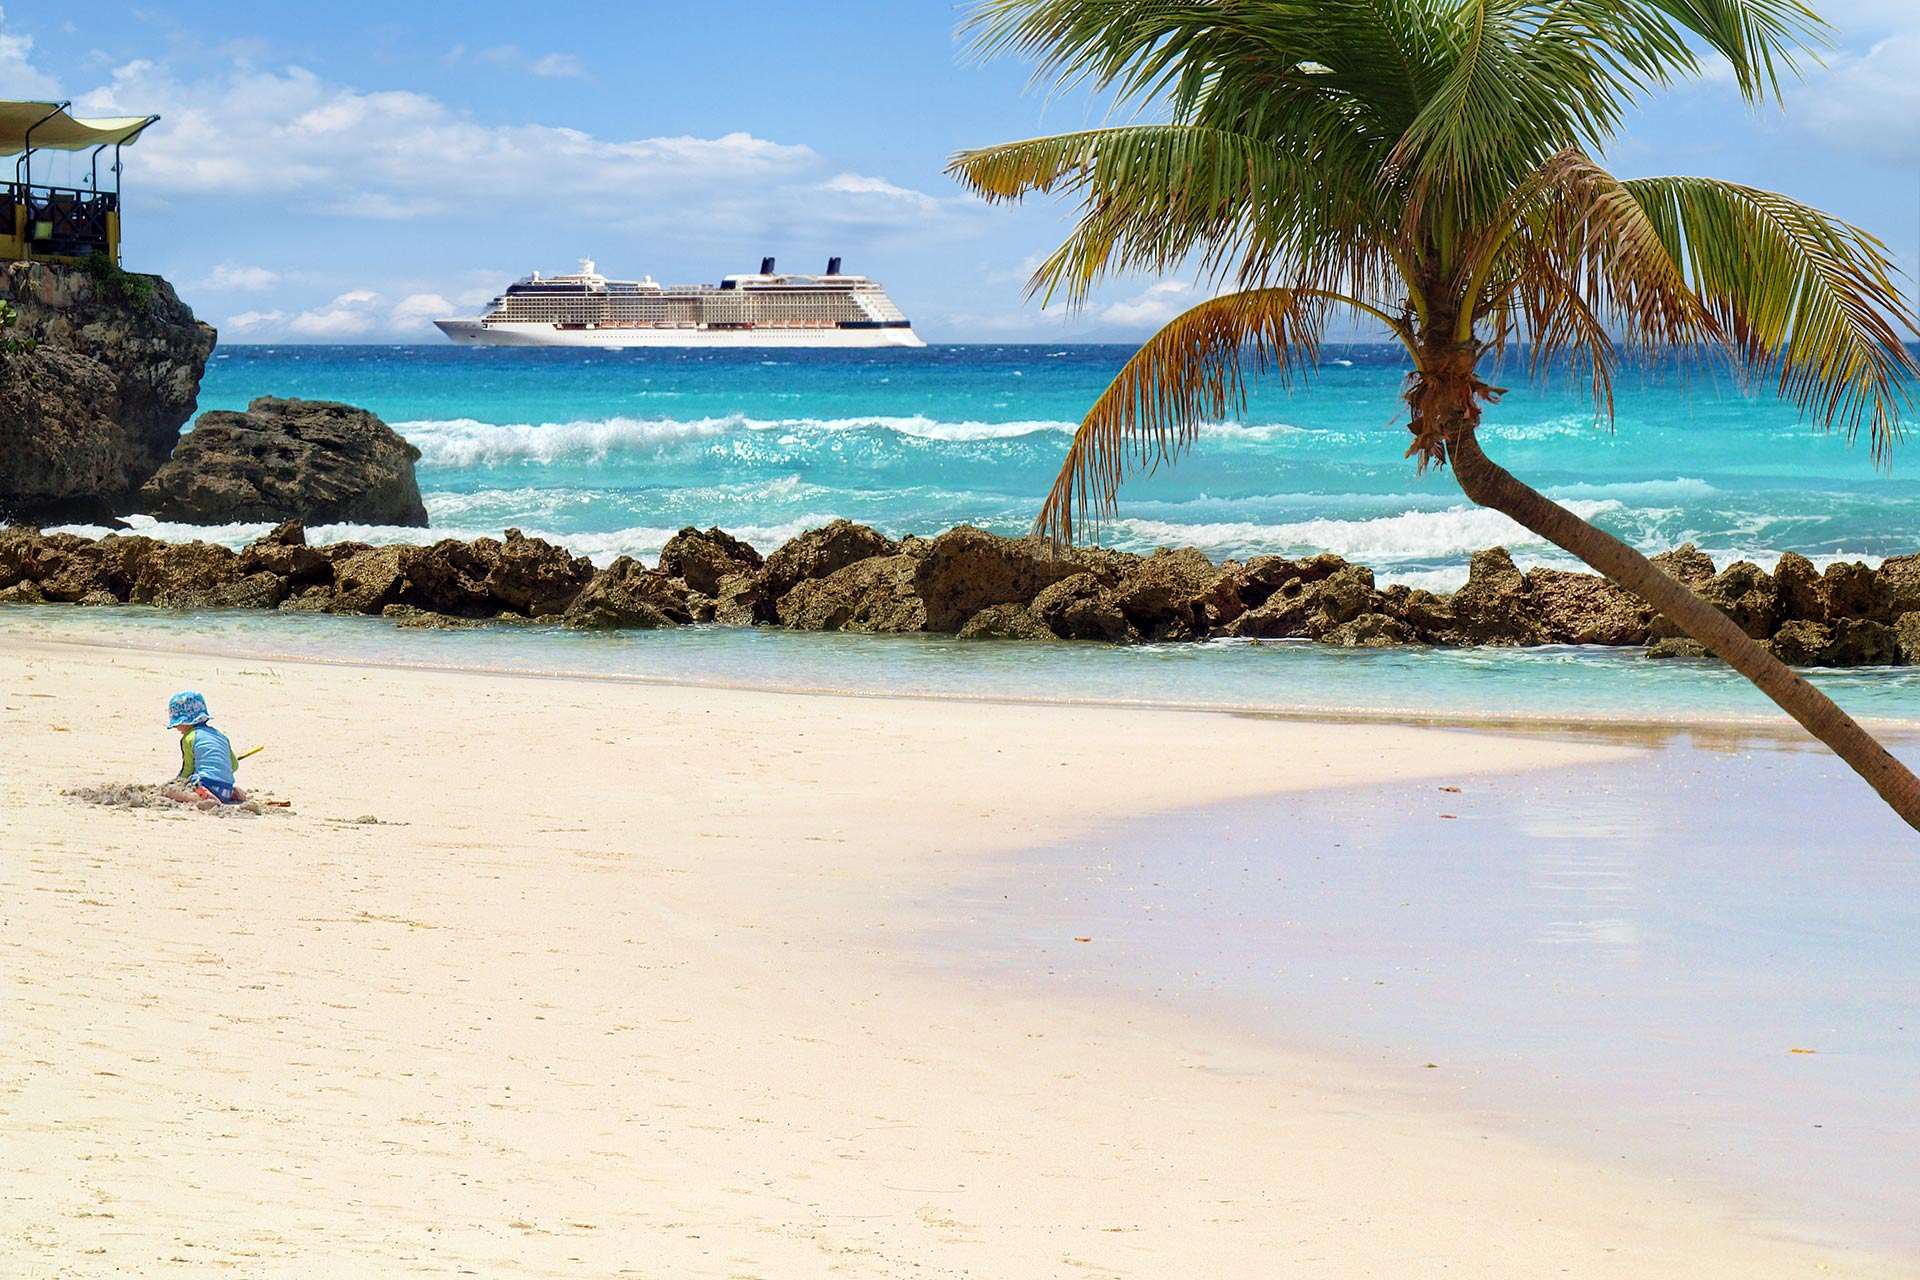 Tropical beach with palm tree and cruise ship in distance